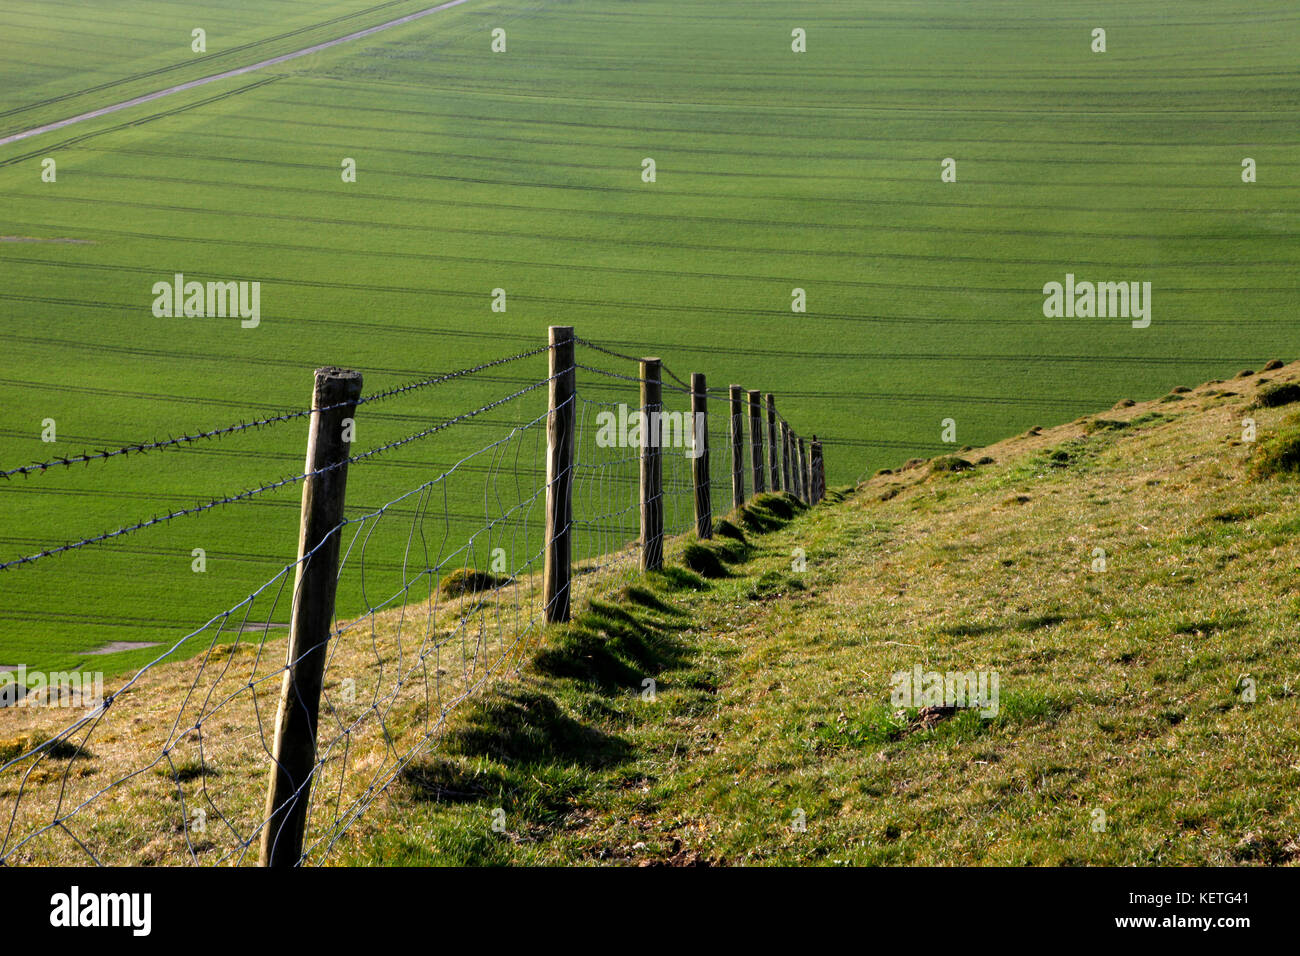 A barbed wire fence descending steeply on chalk downland in Wiltshire. - Stock Image